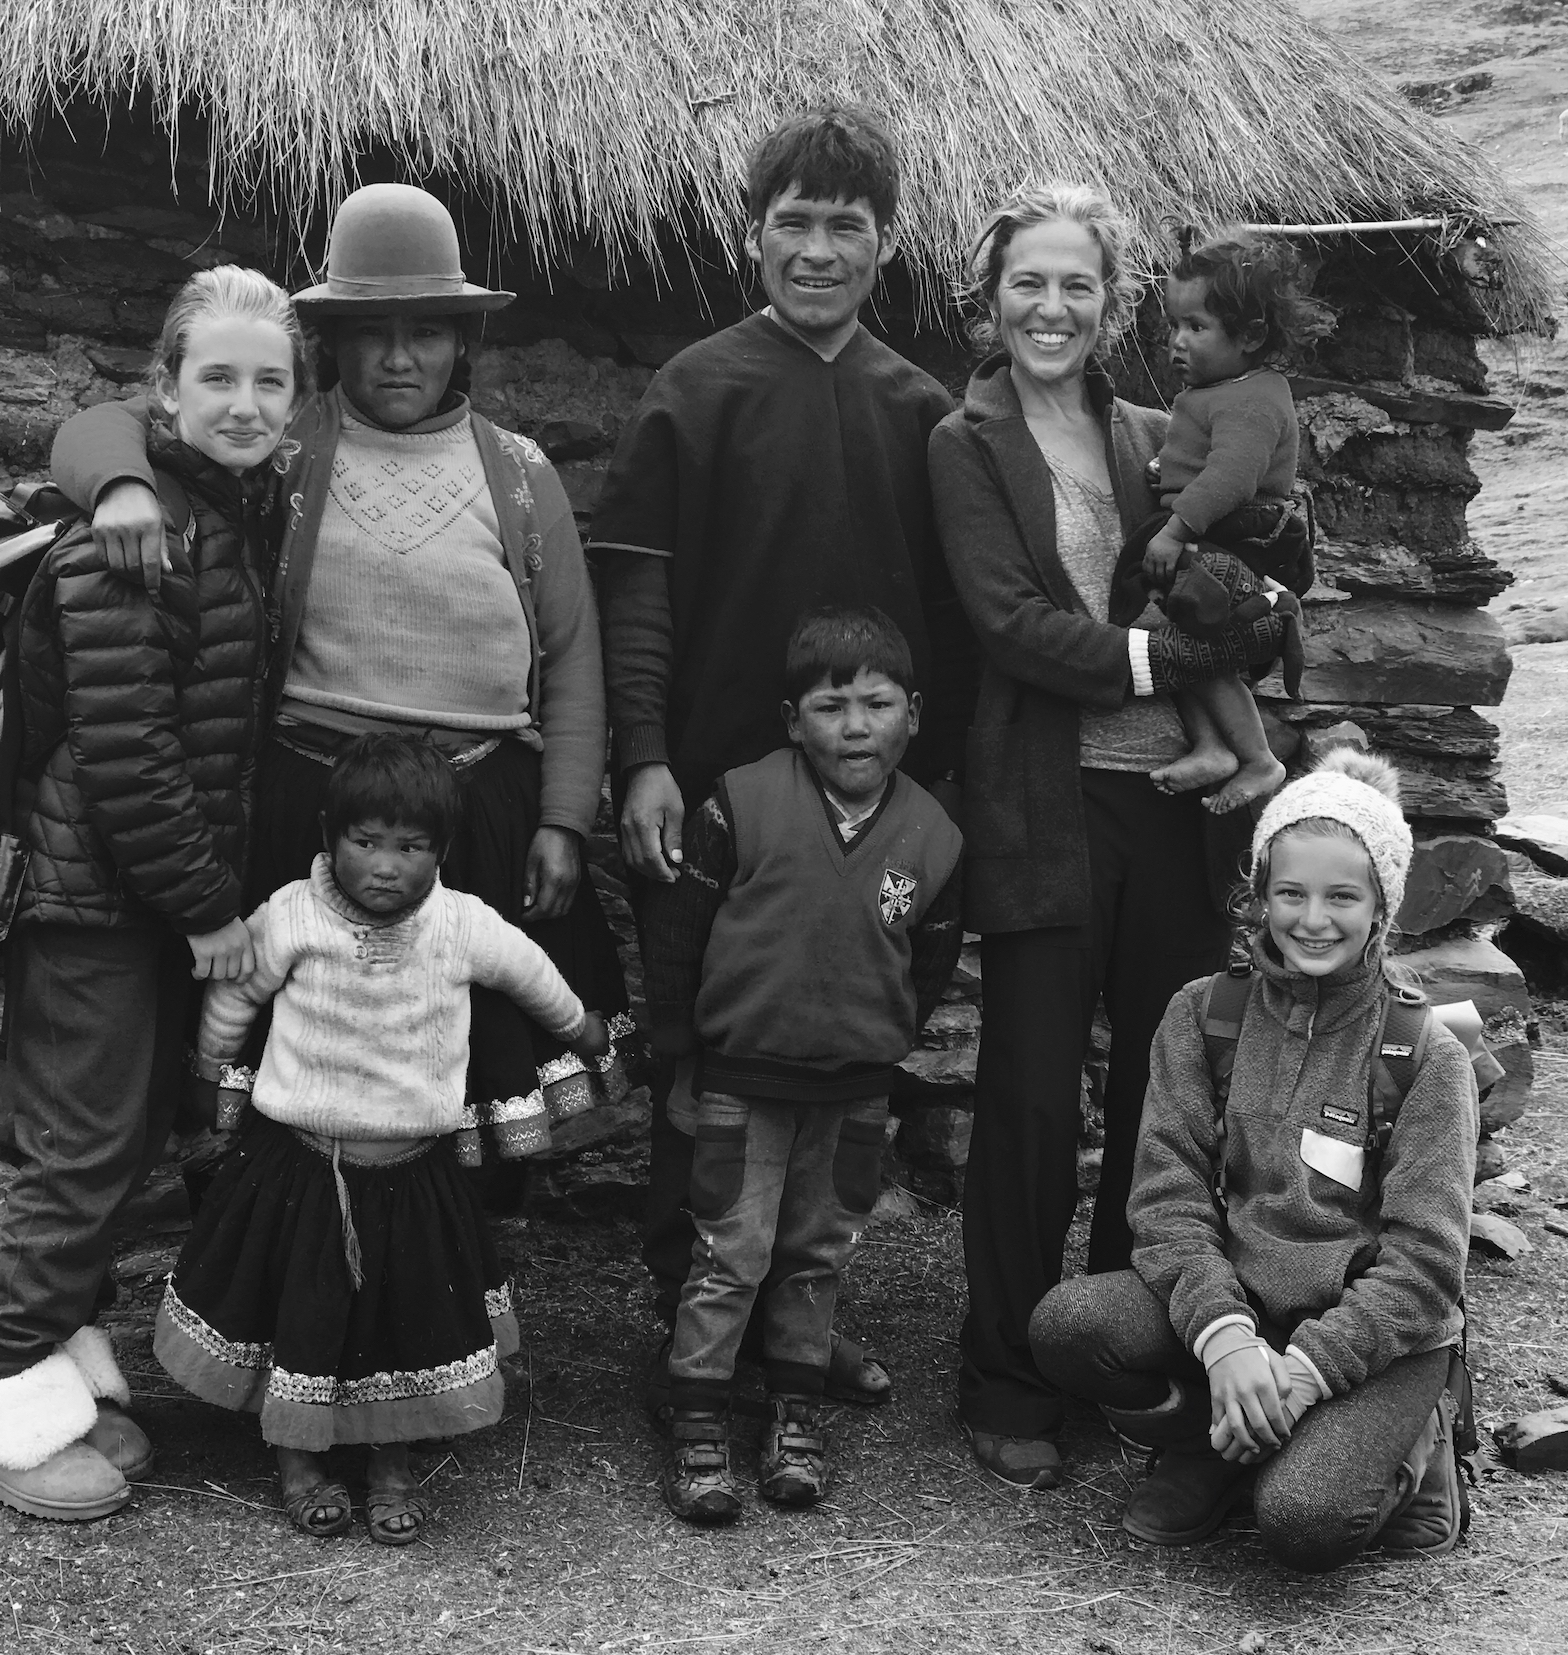 Katie Hebson and daughters, Fifi and O'Neill, pictured here with their hosts, the Machacca family,during Snapshot Project Qochamoqo, Peru 2017.